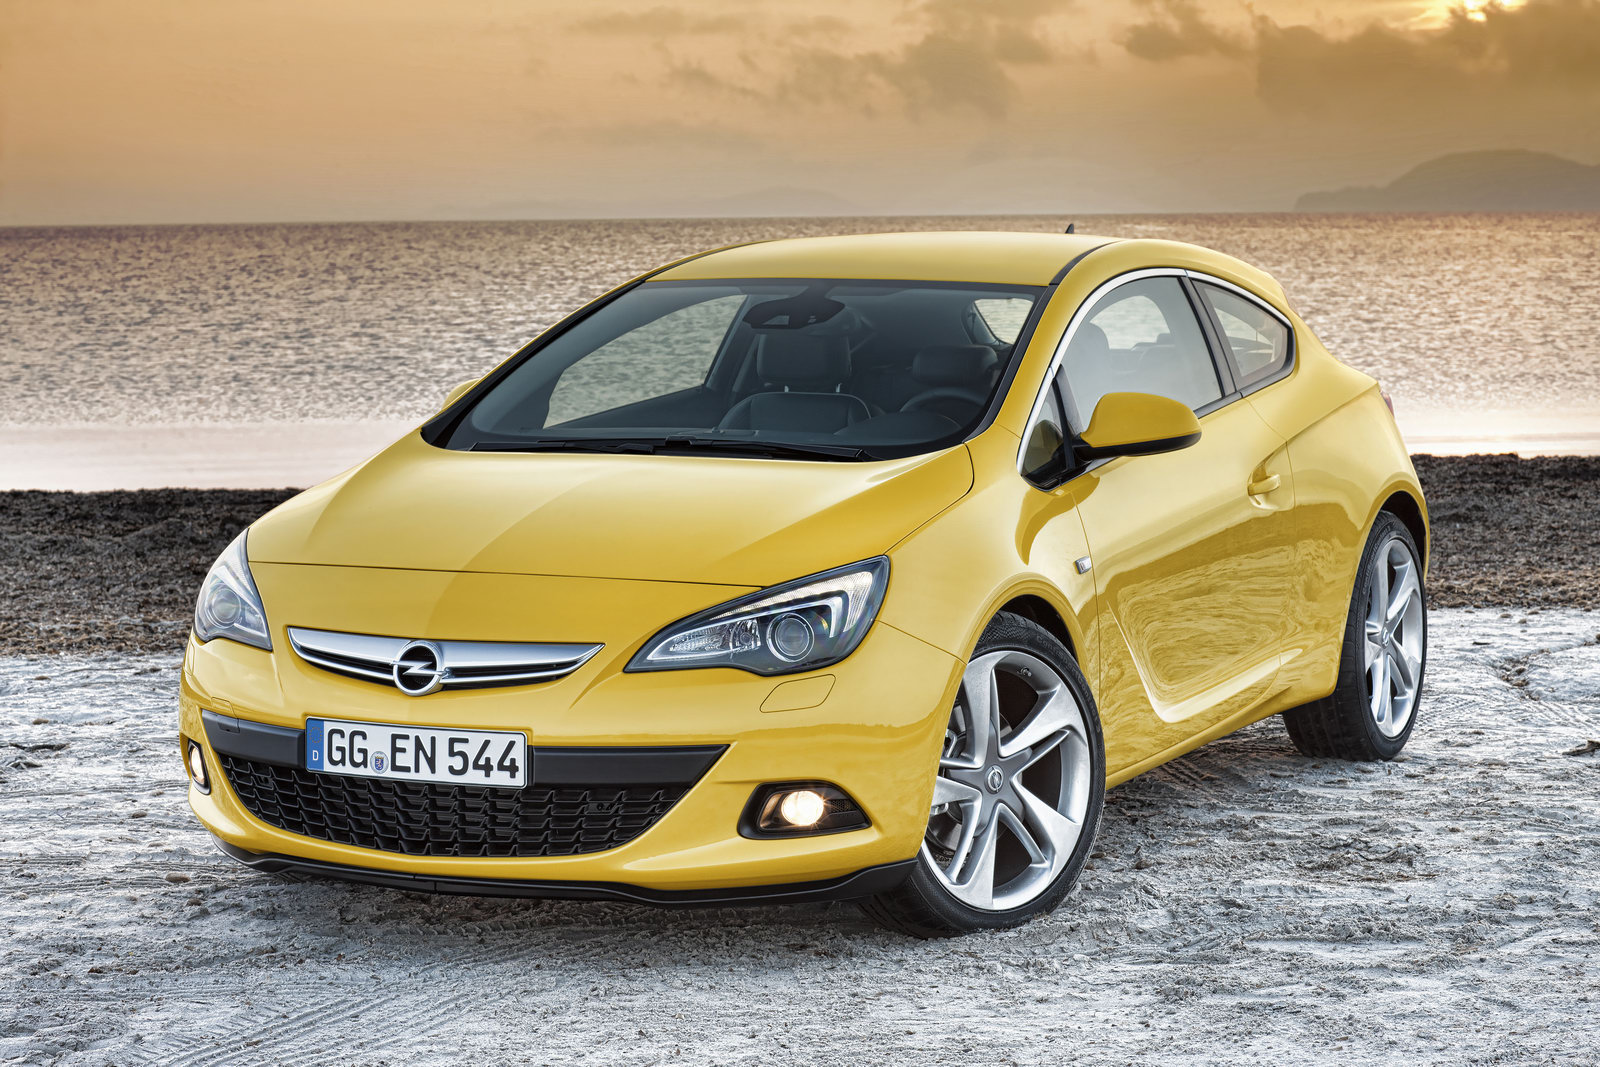 2012 Opel Astra GTC officially unveiled in Europe; Pre-order begins